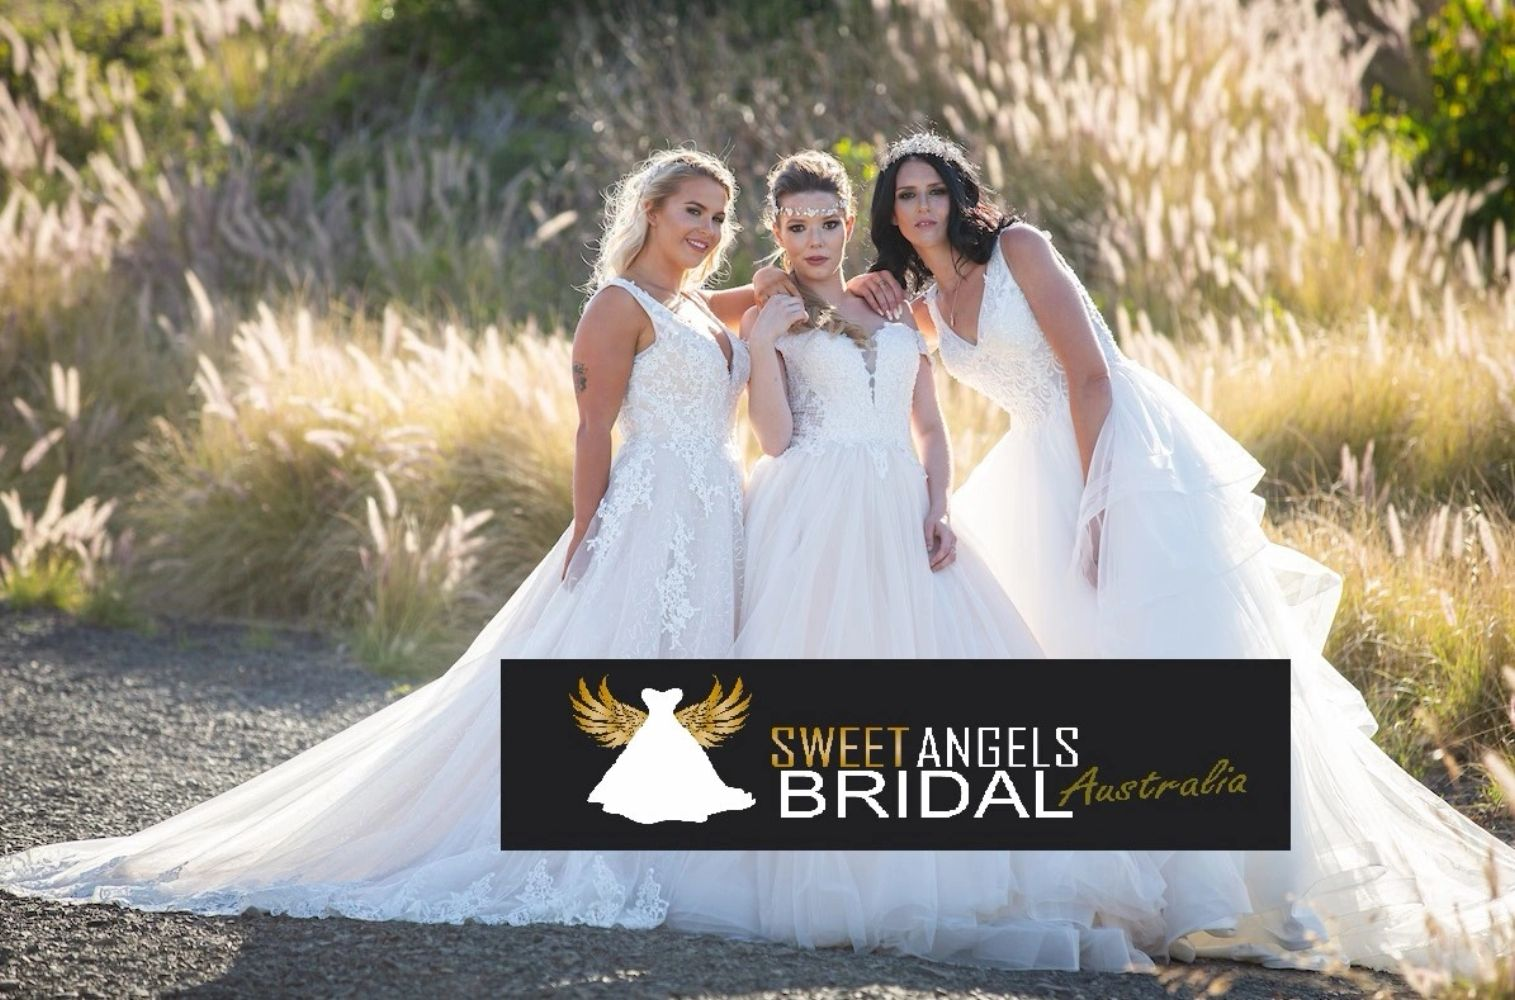 Sweet Angels Bridal Australia Wedding Dresses